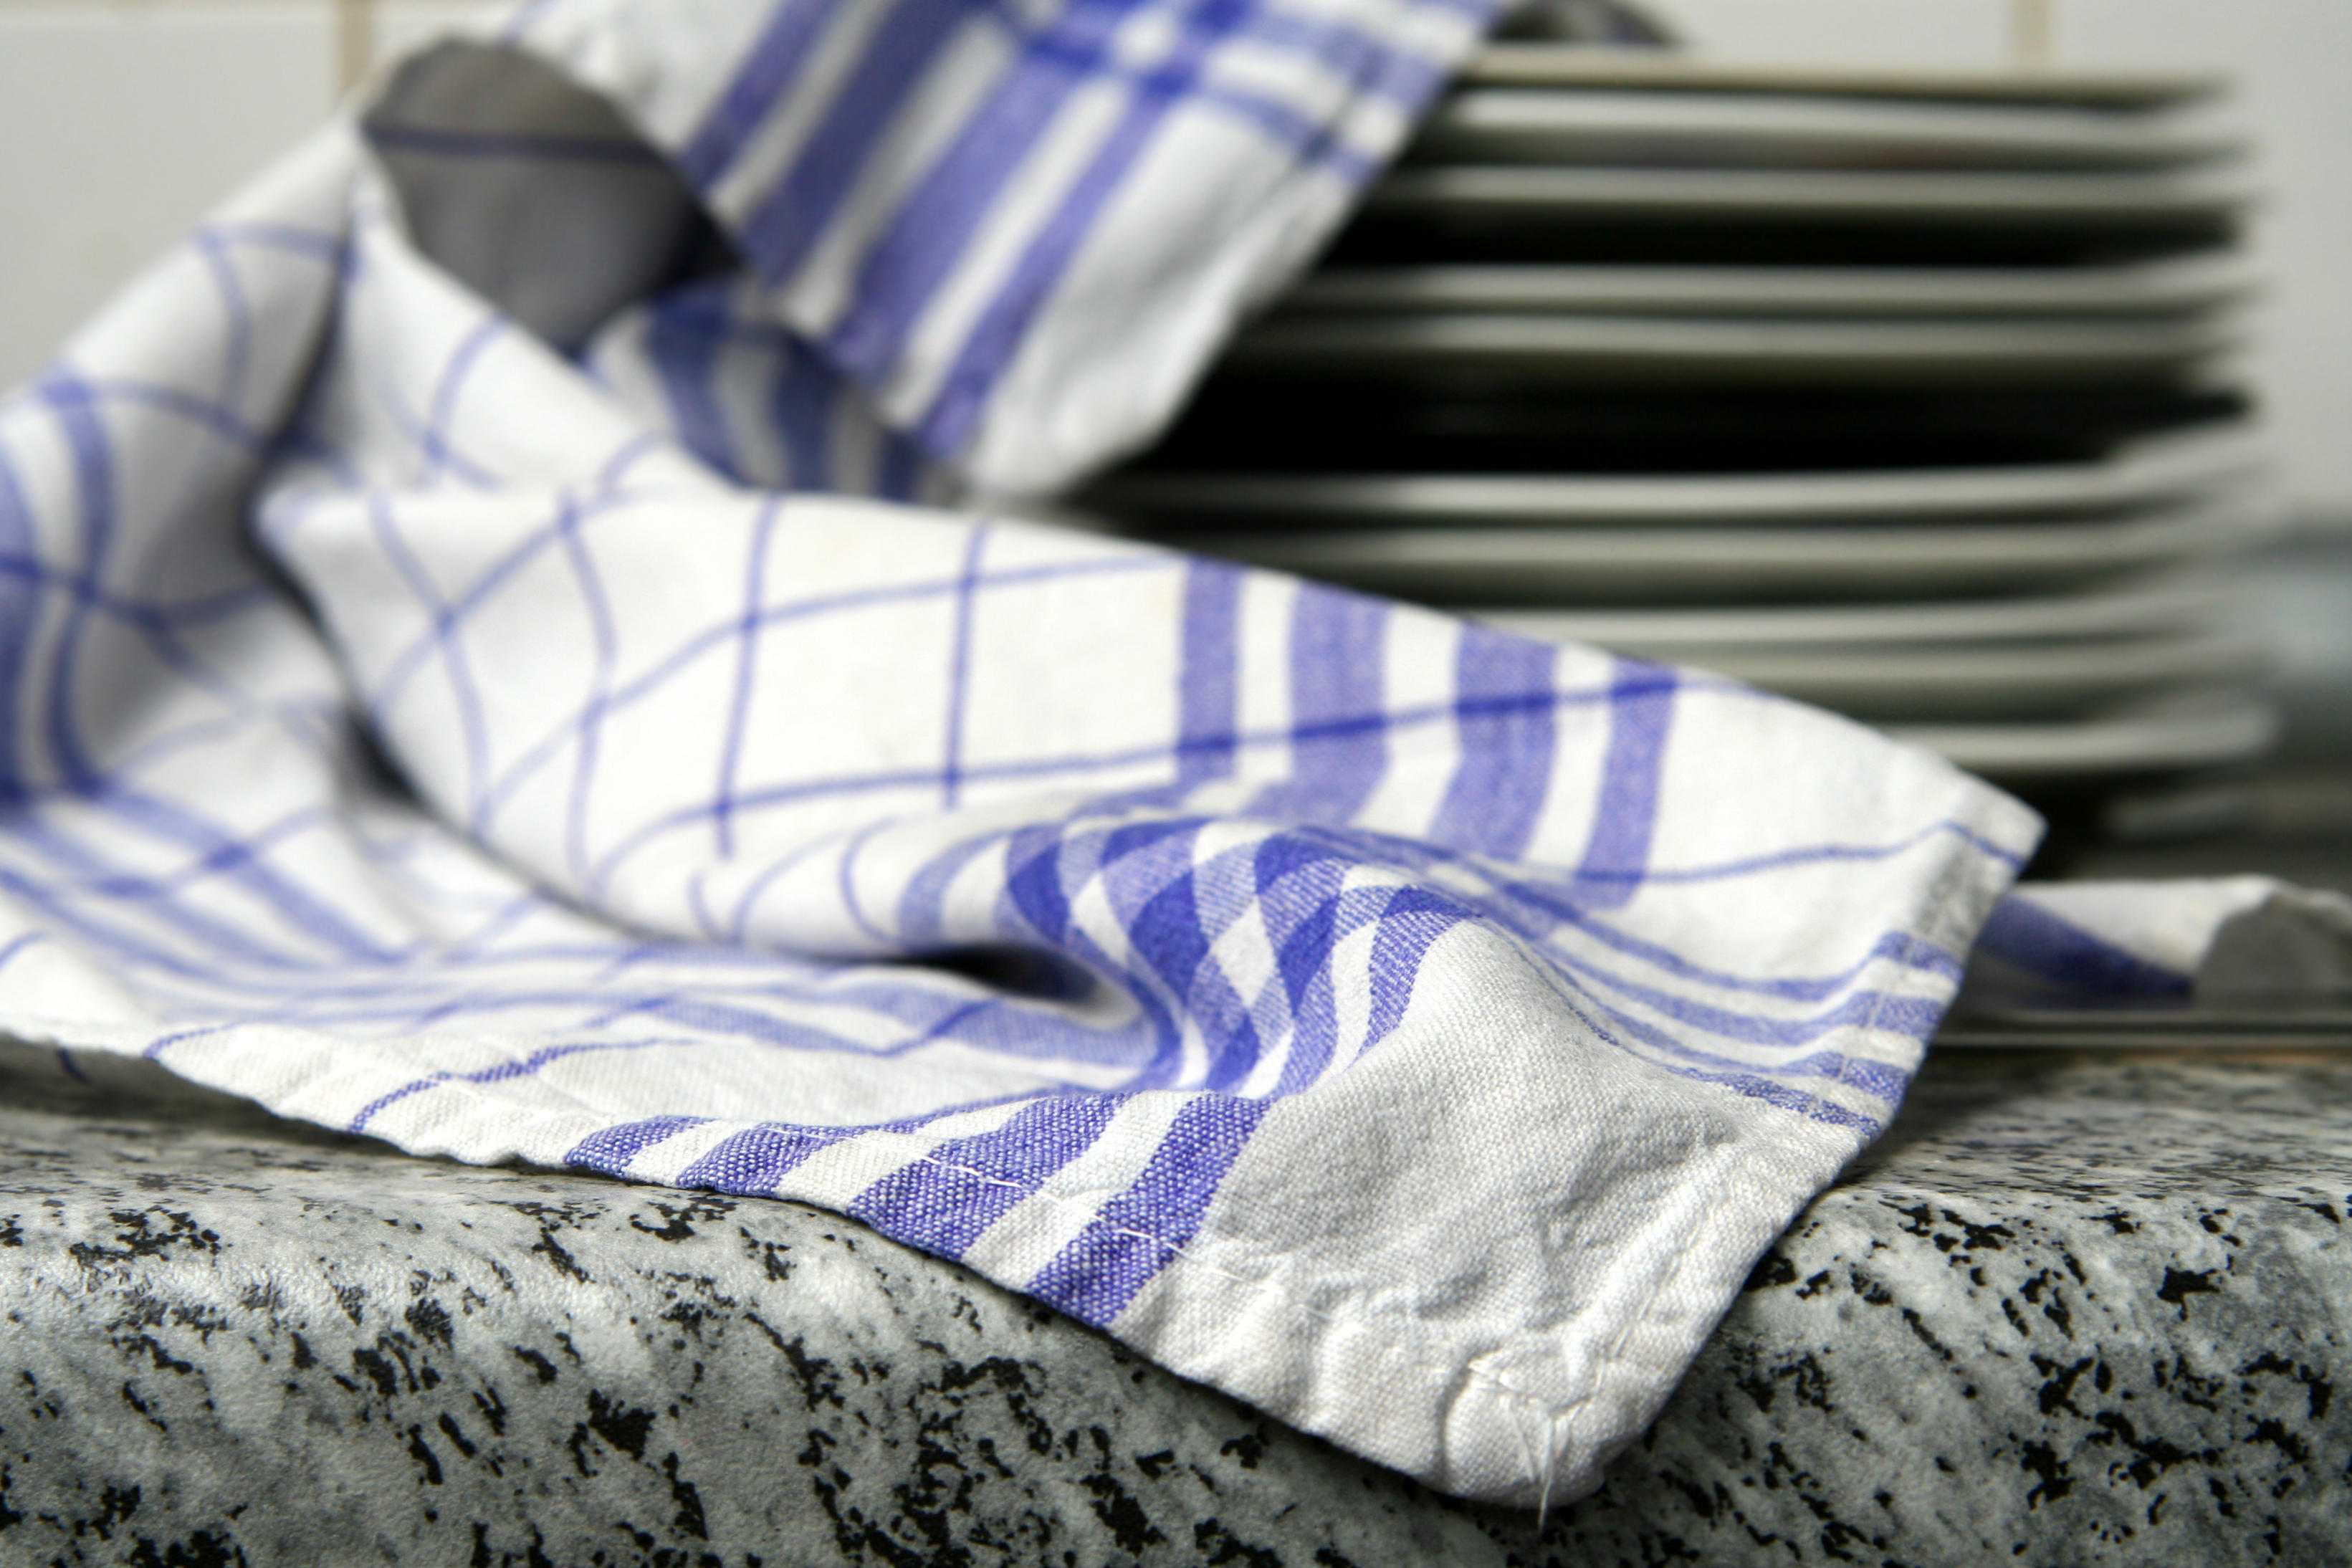 How Often Should You Wash Your Germy Kitchen Towels?